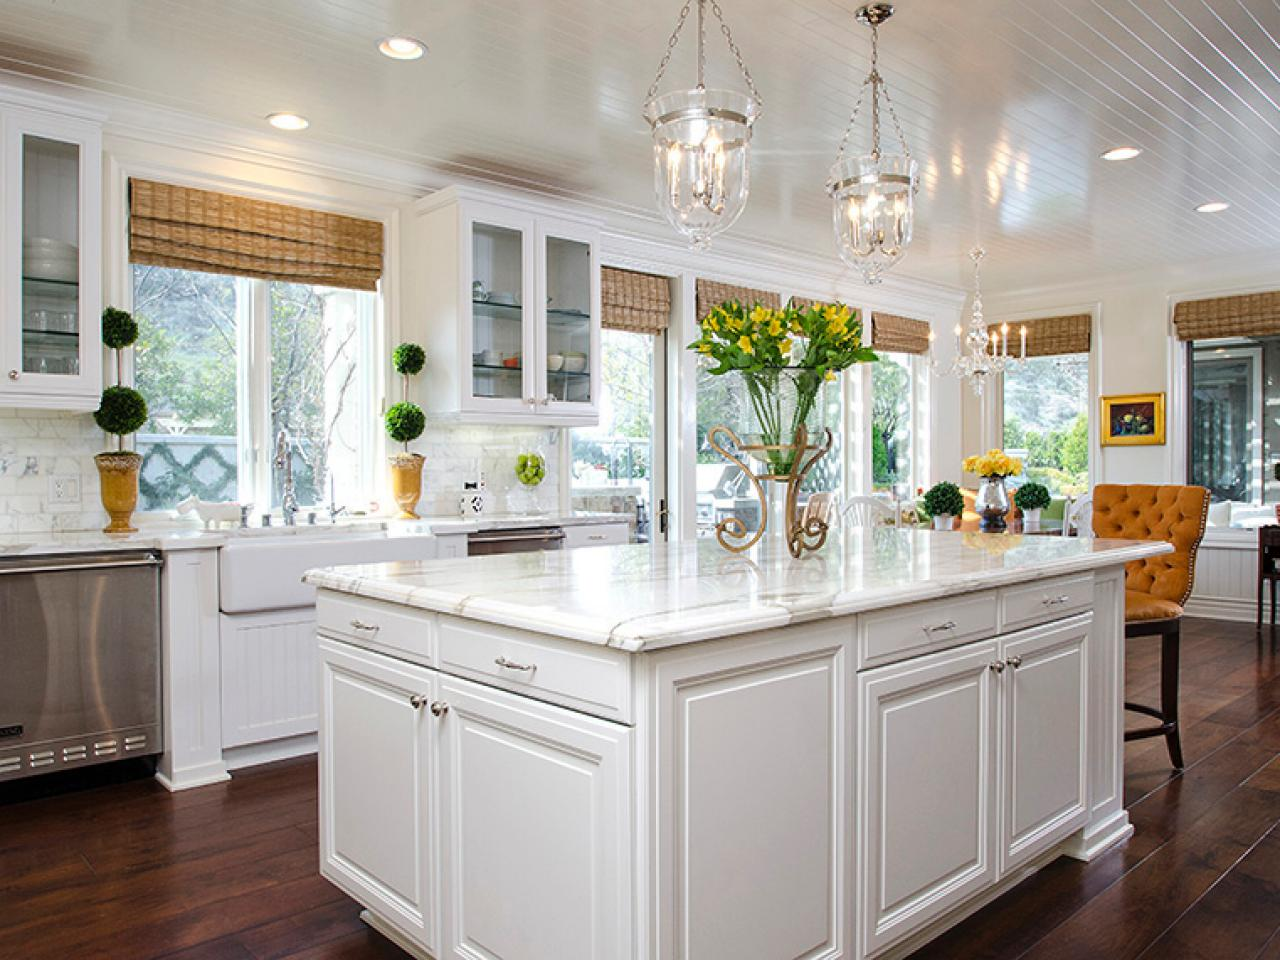 Kitchen Valance Ideas Prepossessing Kitchen Window Treatment Valances Hgtv Pictures & Ideas  Hgtv Decorating Design